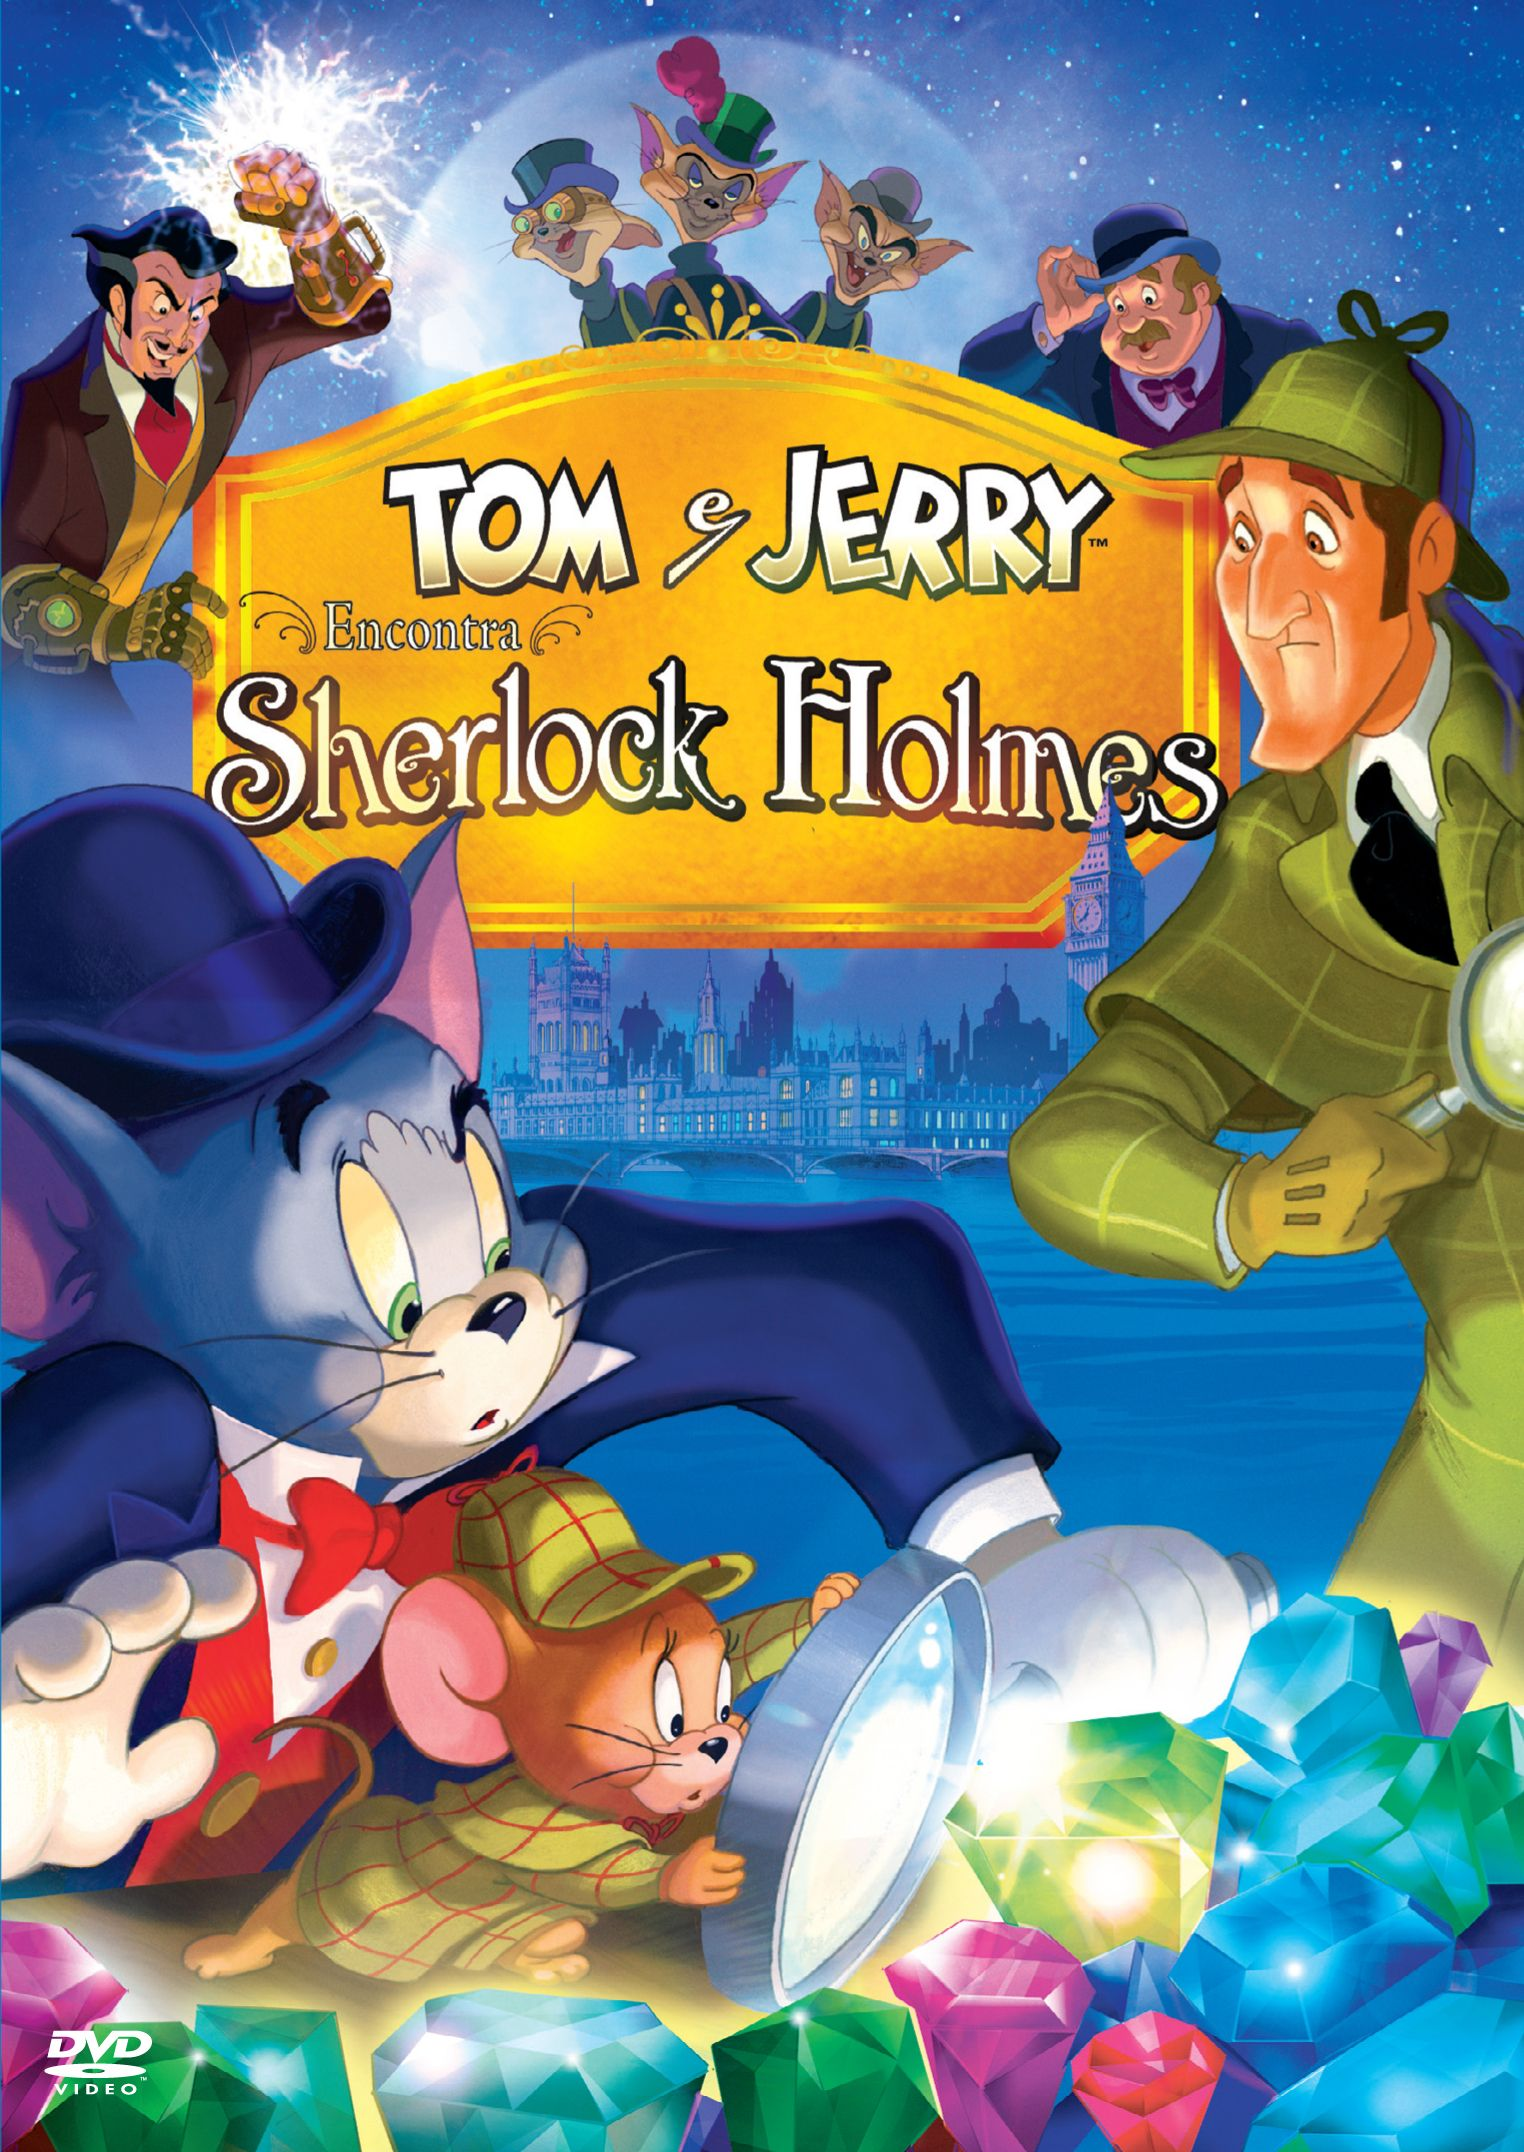 tom and jerry meet sherlock holmes online book